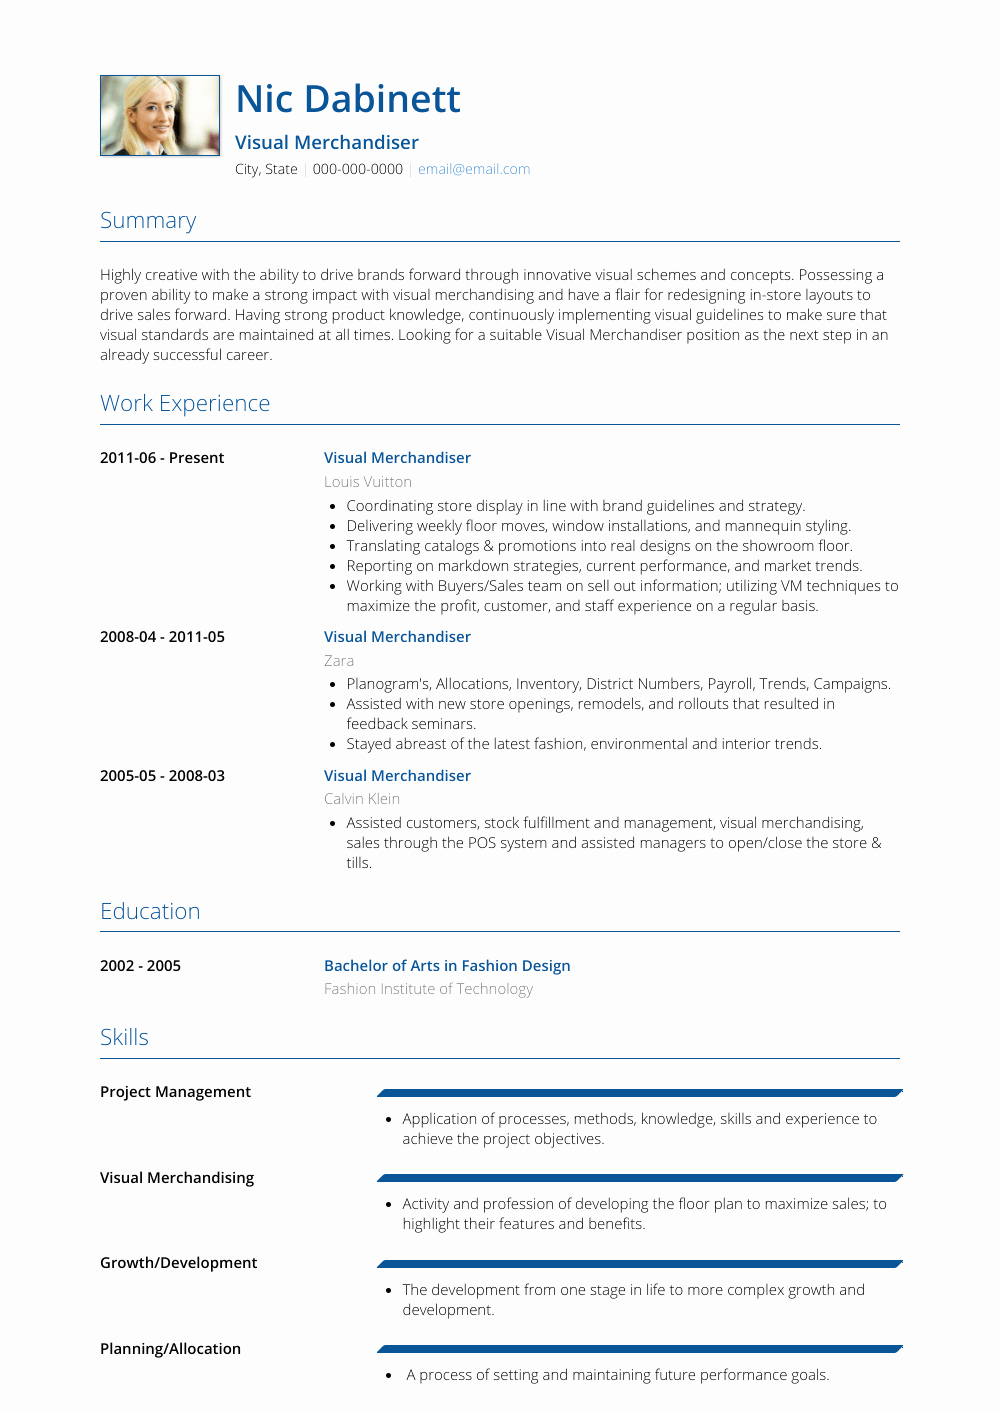 Visual Merchandising Resume Samples Inspirational Visual Merchandiser Resume Samples and Templates